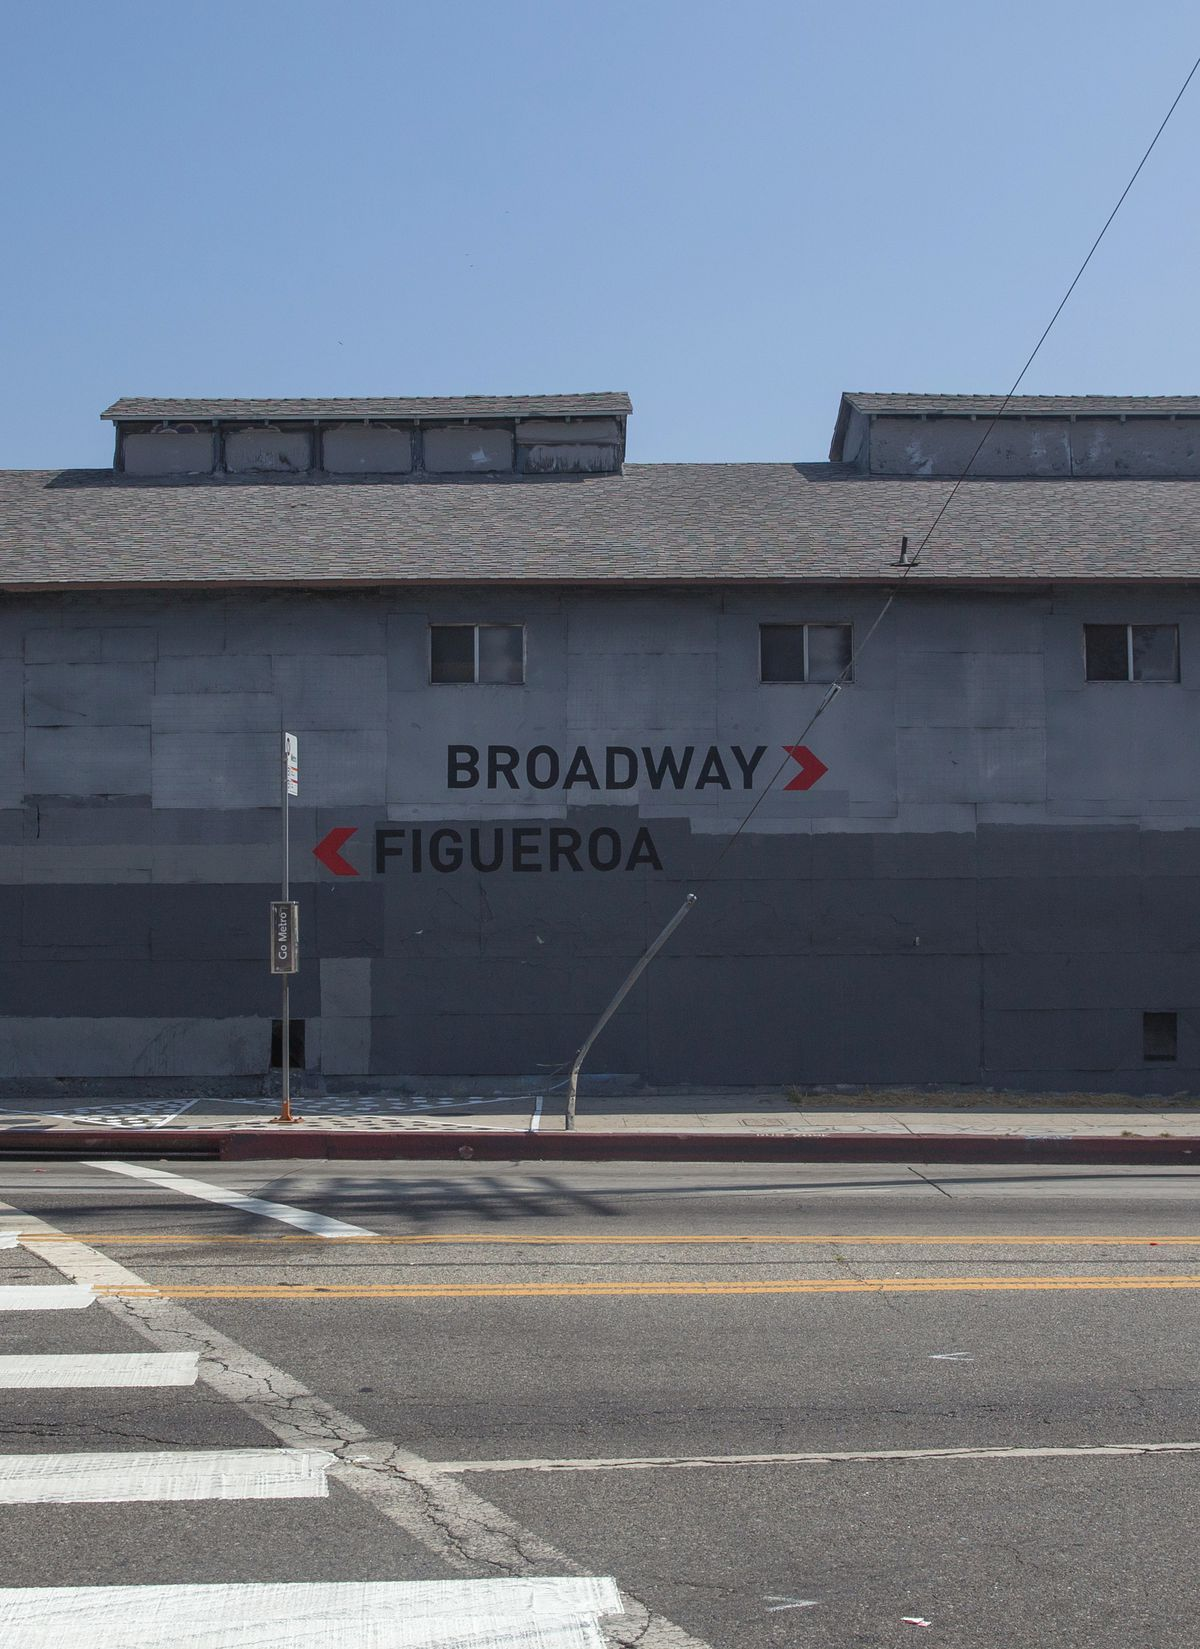 Sign pointing to Broadway and Figueroa